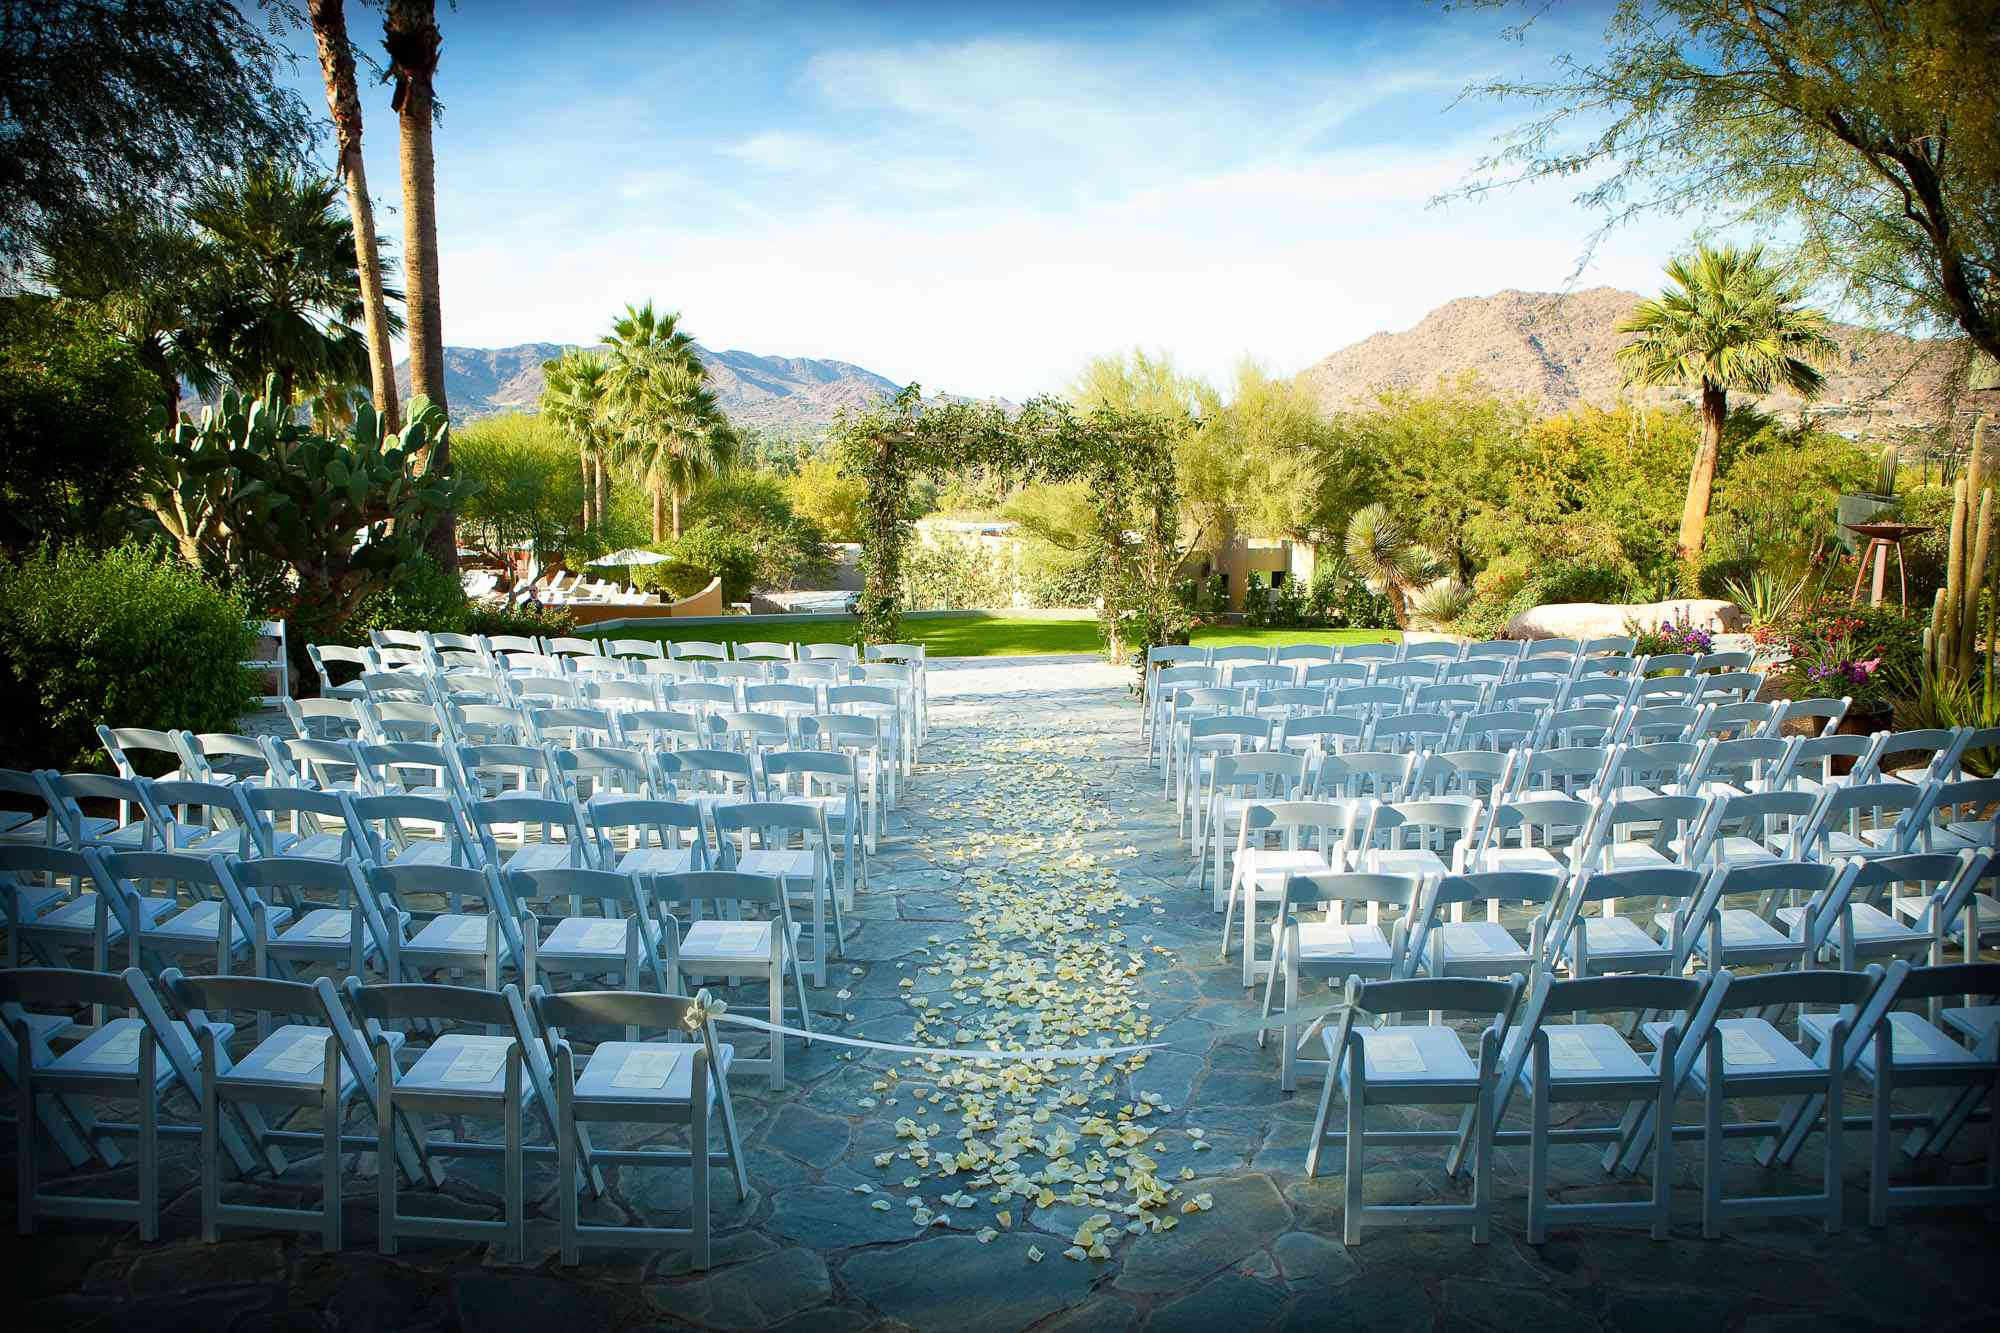 Sanctuary Camelback Mountain Resort and Spa in Scottsdale